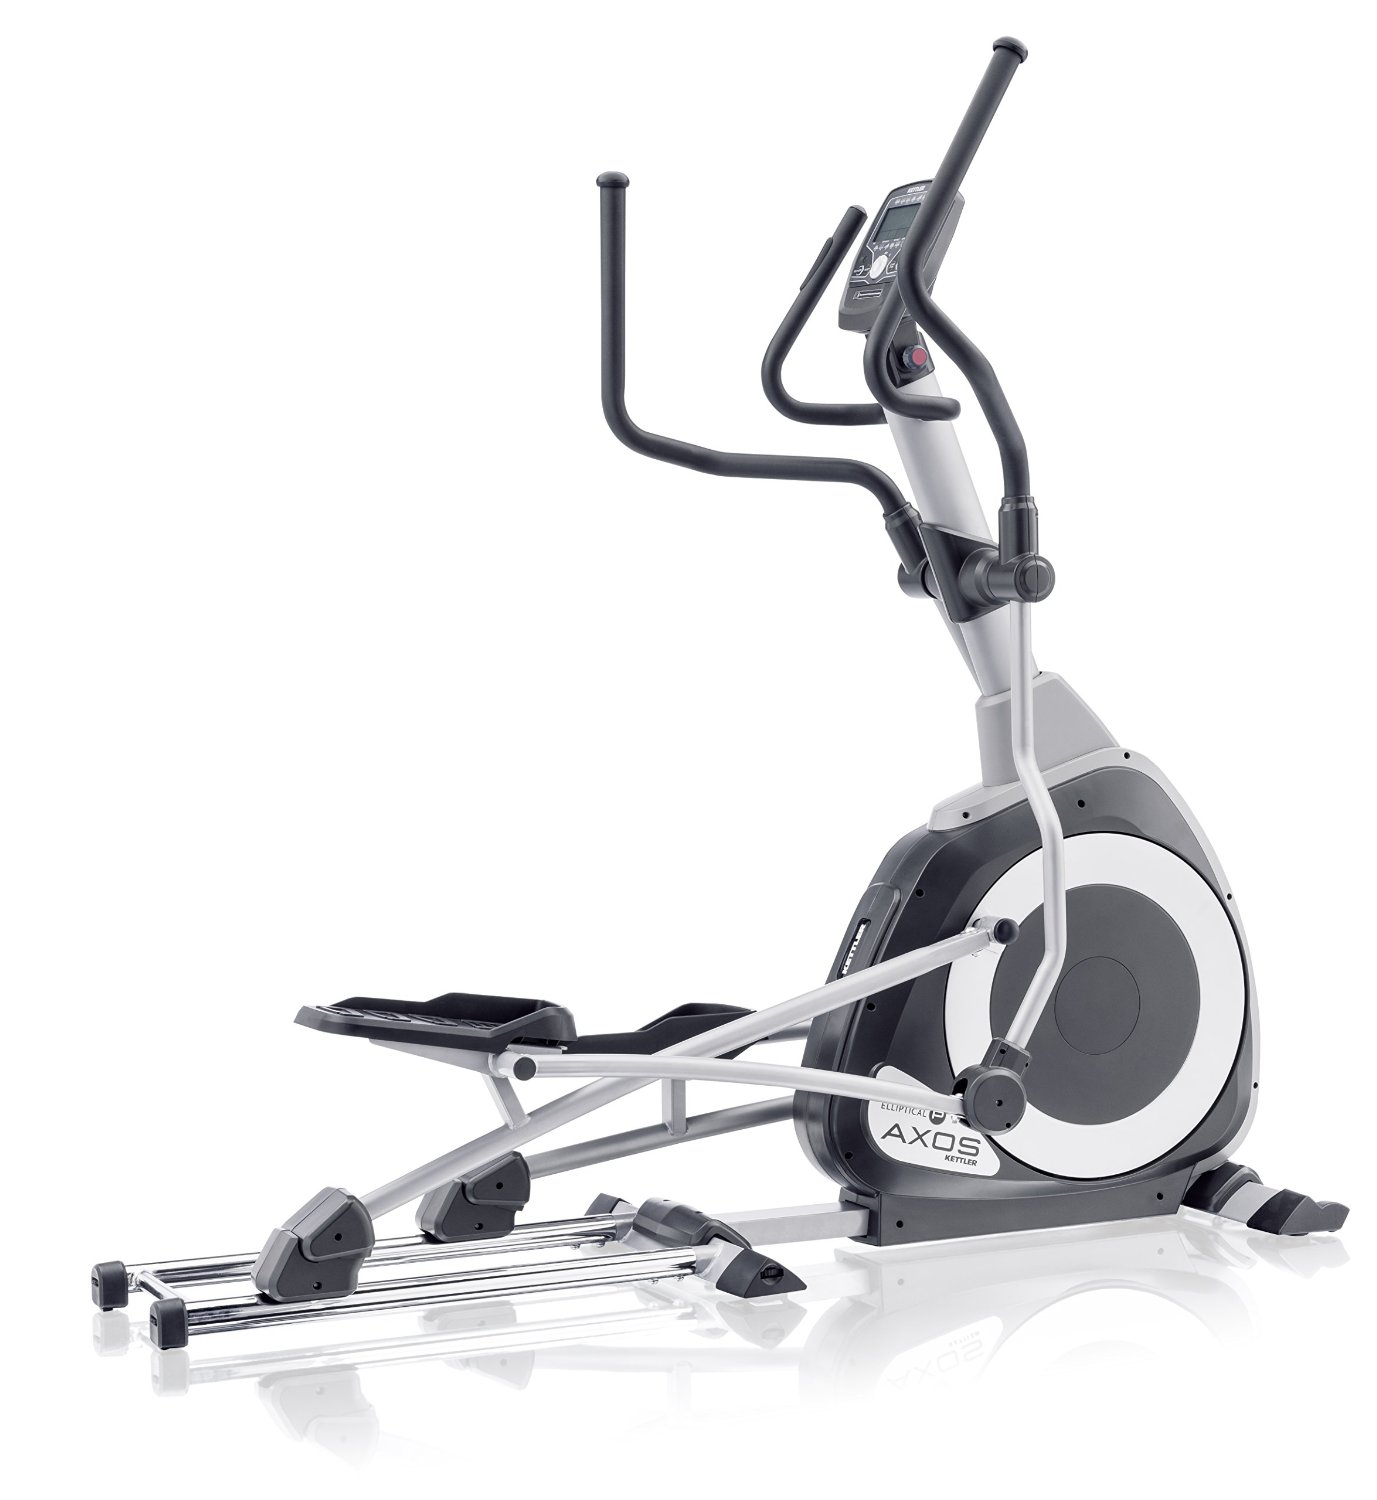 kettler axos p elliptical cross trainer review latest fitness reviews fitness machine. Black Bedroom Furniture Sets. Home Design Ideas